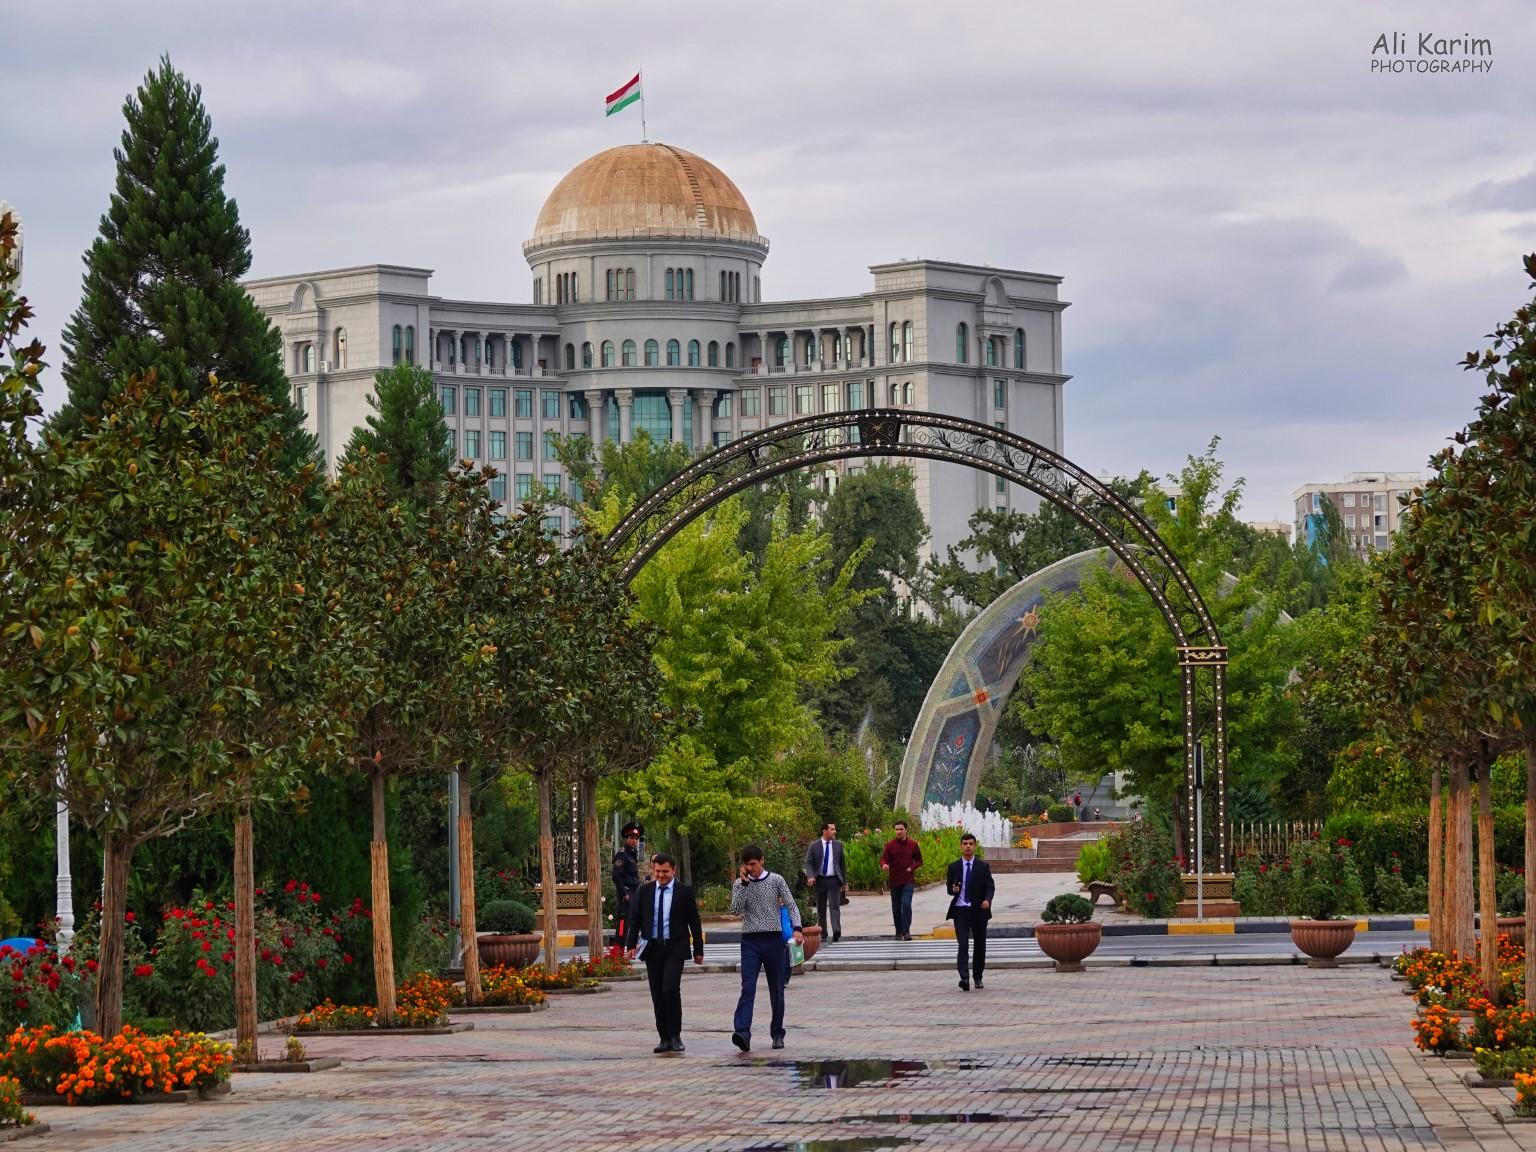 More Dushanbe, Tajikistan Locals enjoying the beautiful parks all over the city center